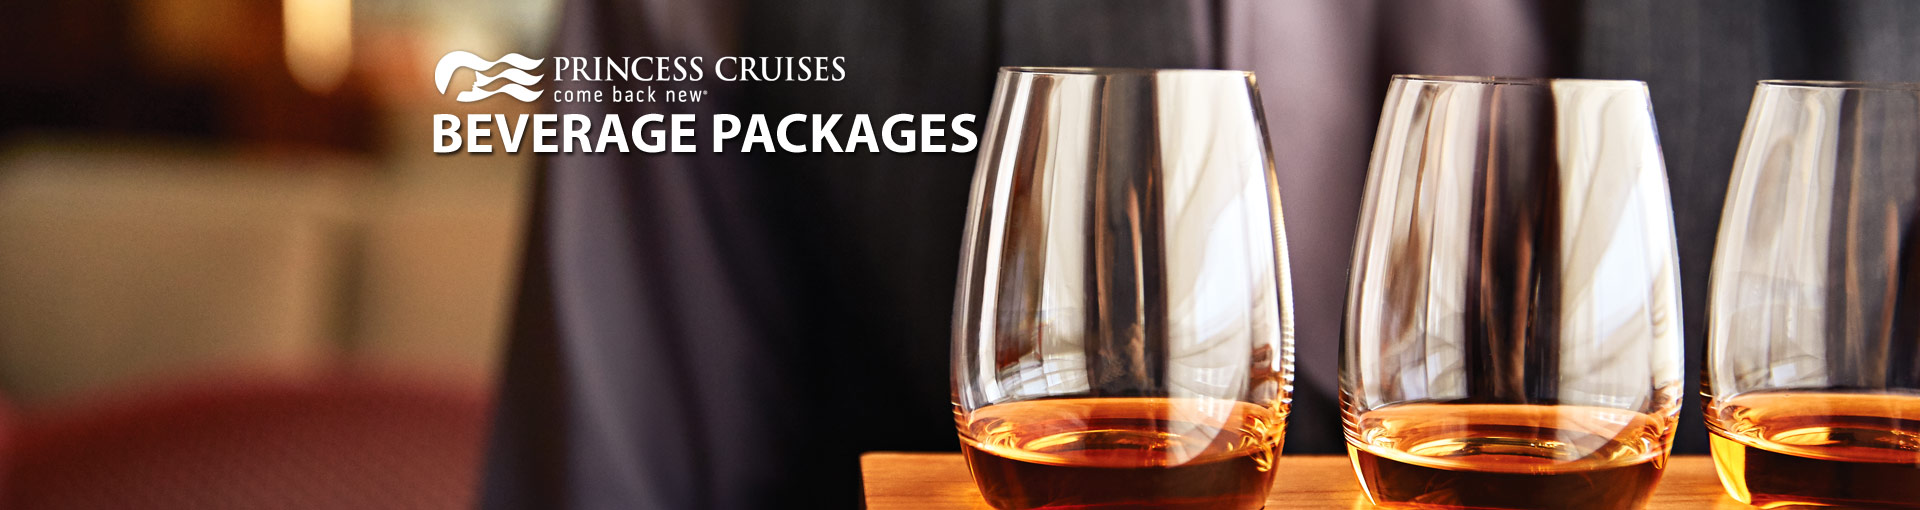 Princess Cruises Drink Packages